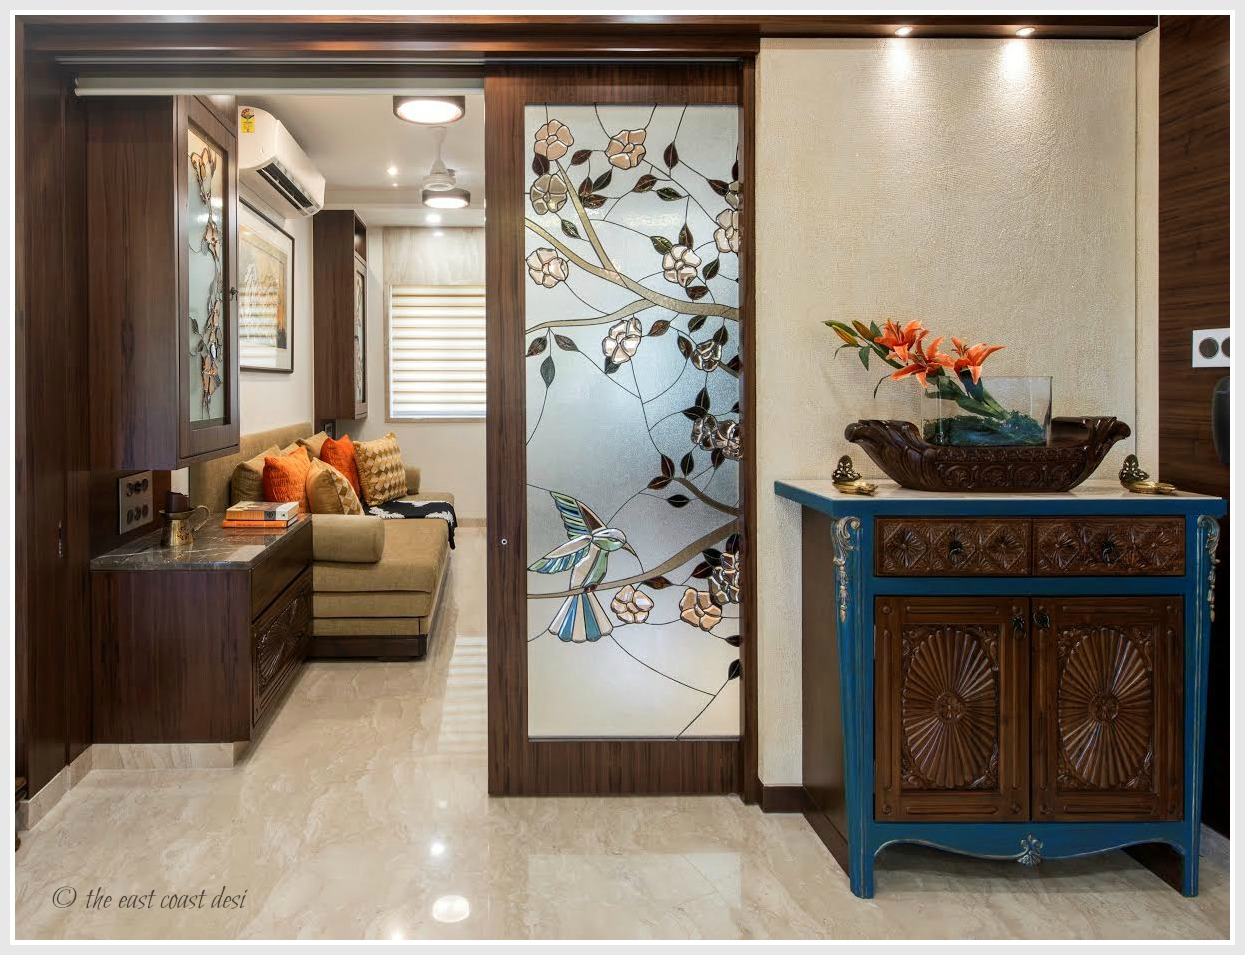 The east coast desi for Foyer design ideas india